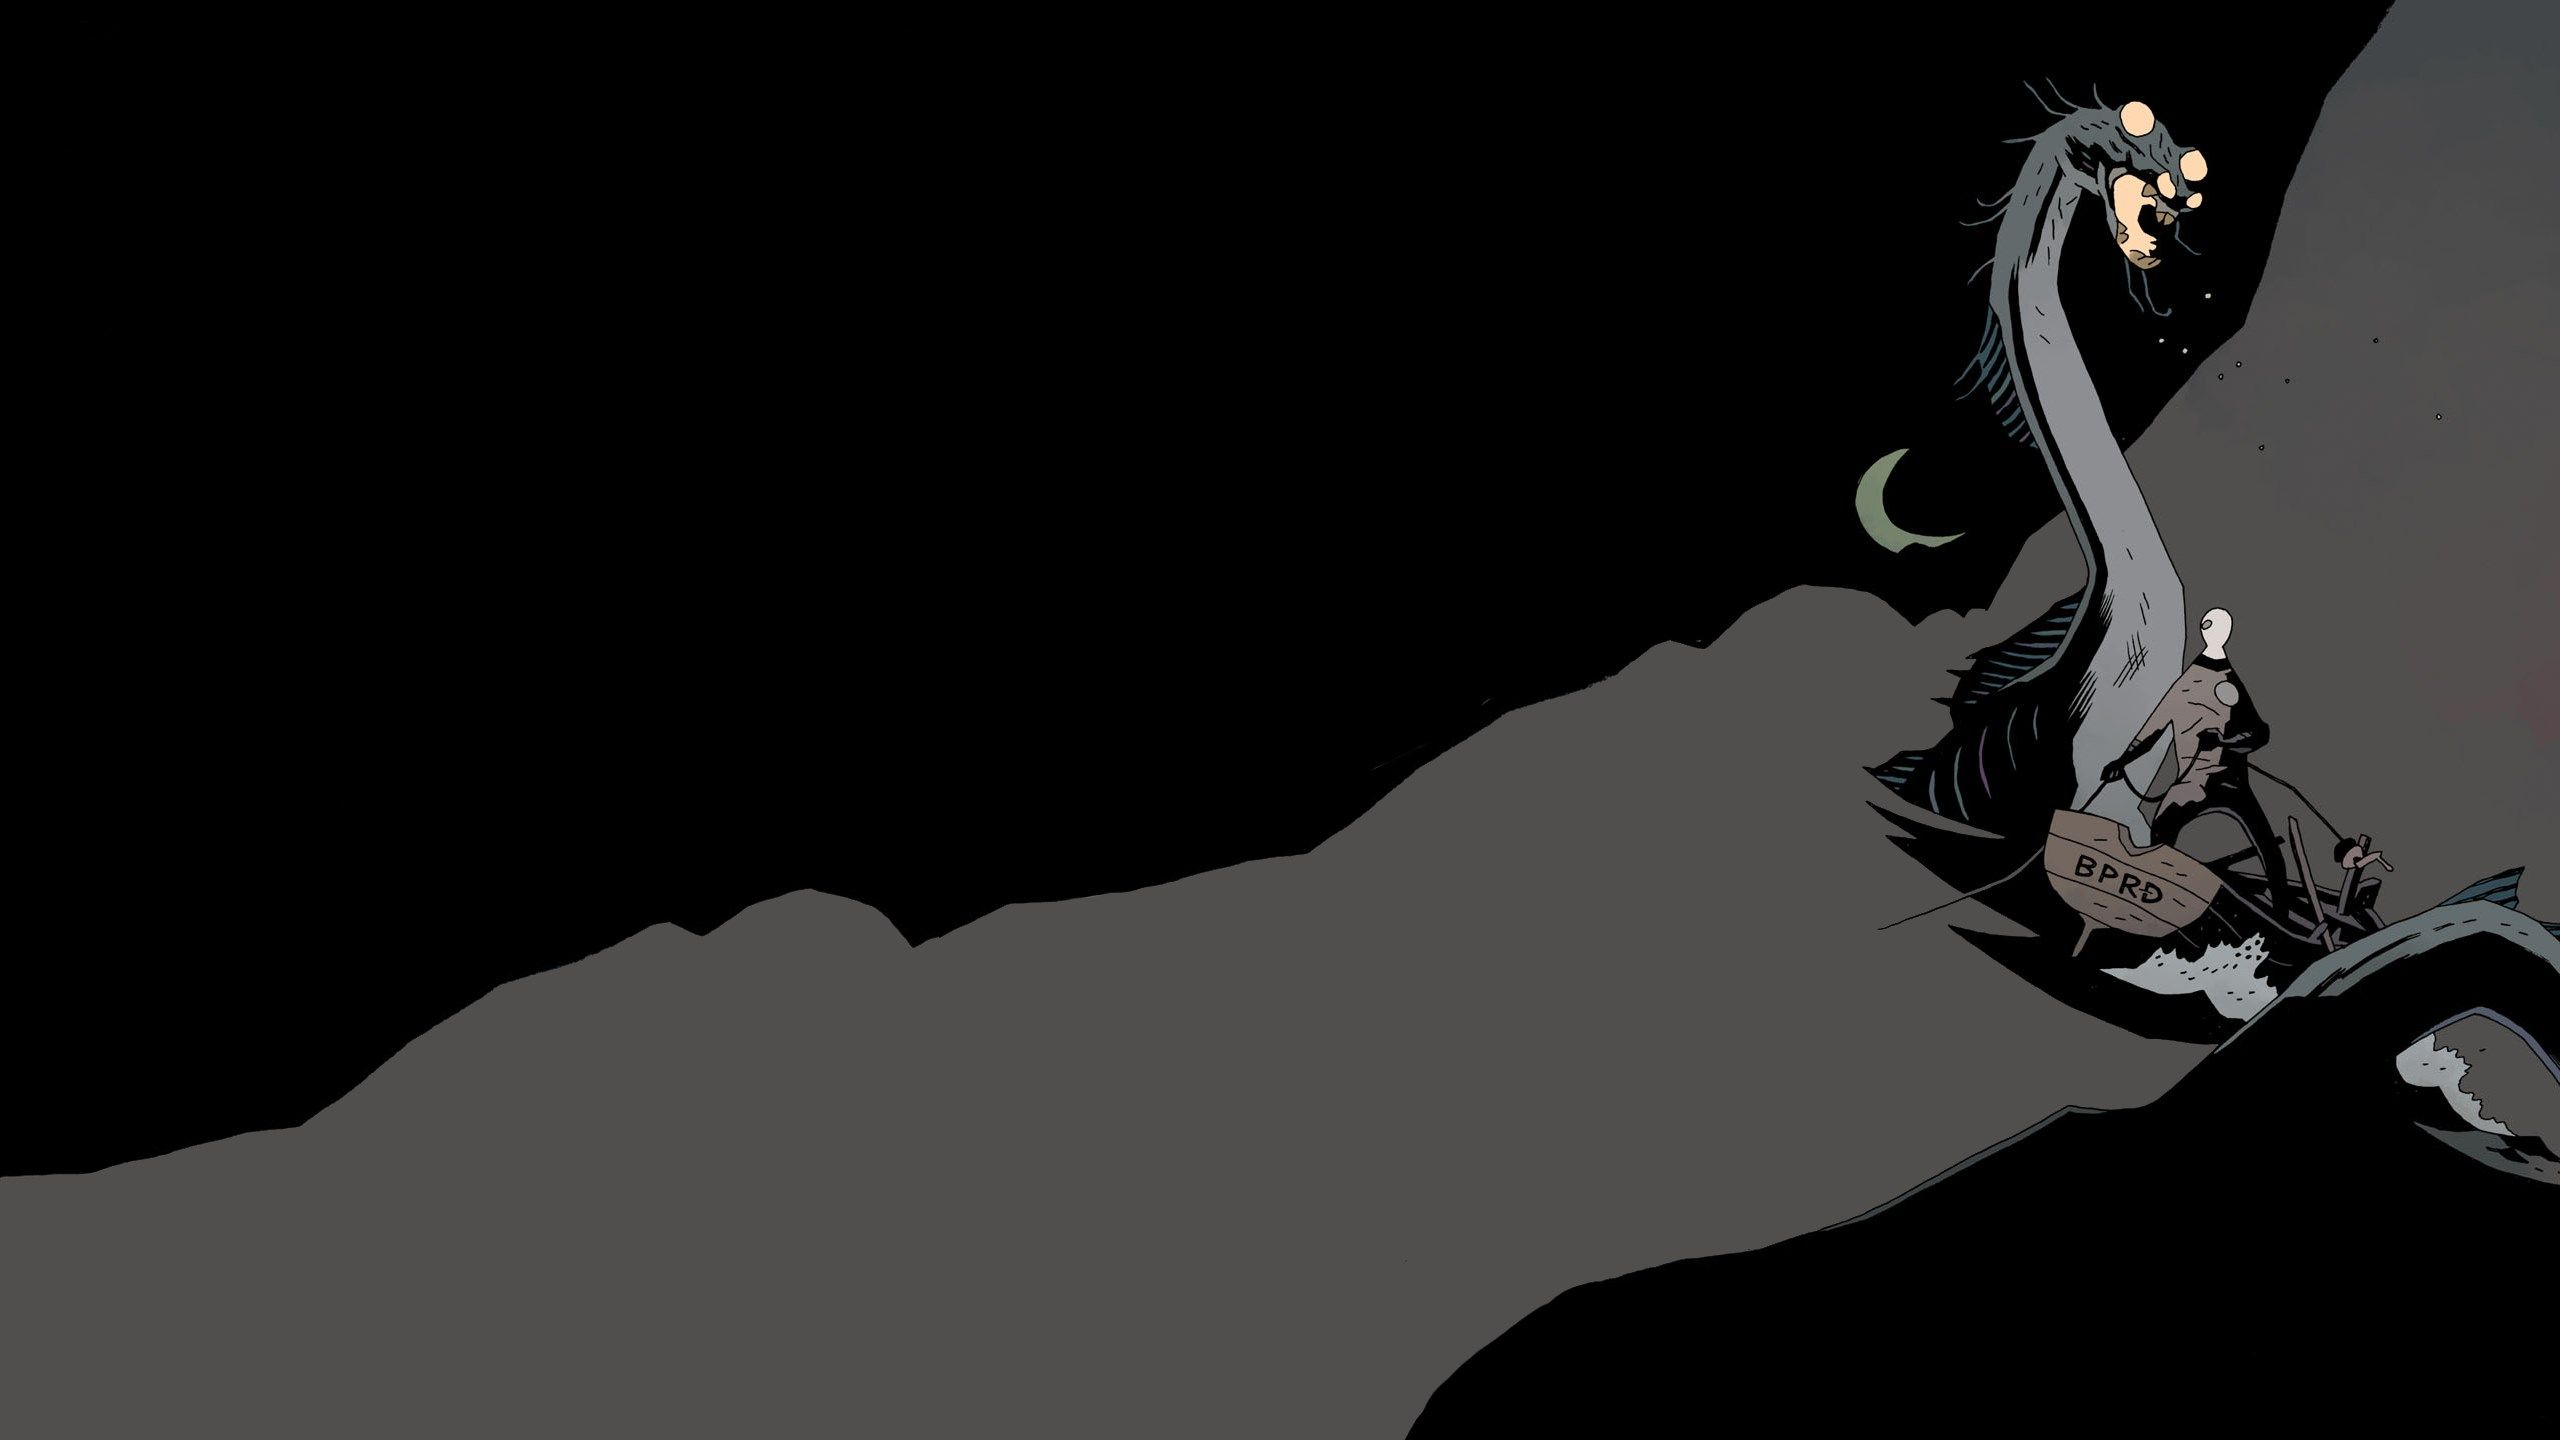 2560x1440 high resolution wallpapers widescreen hellboy